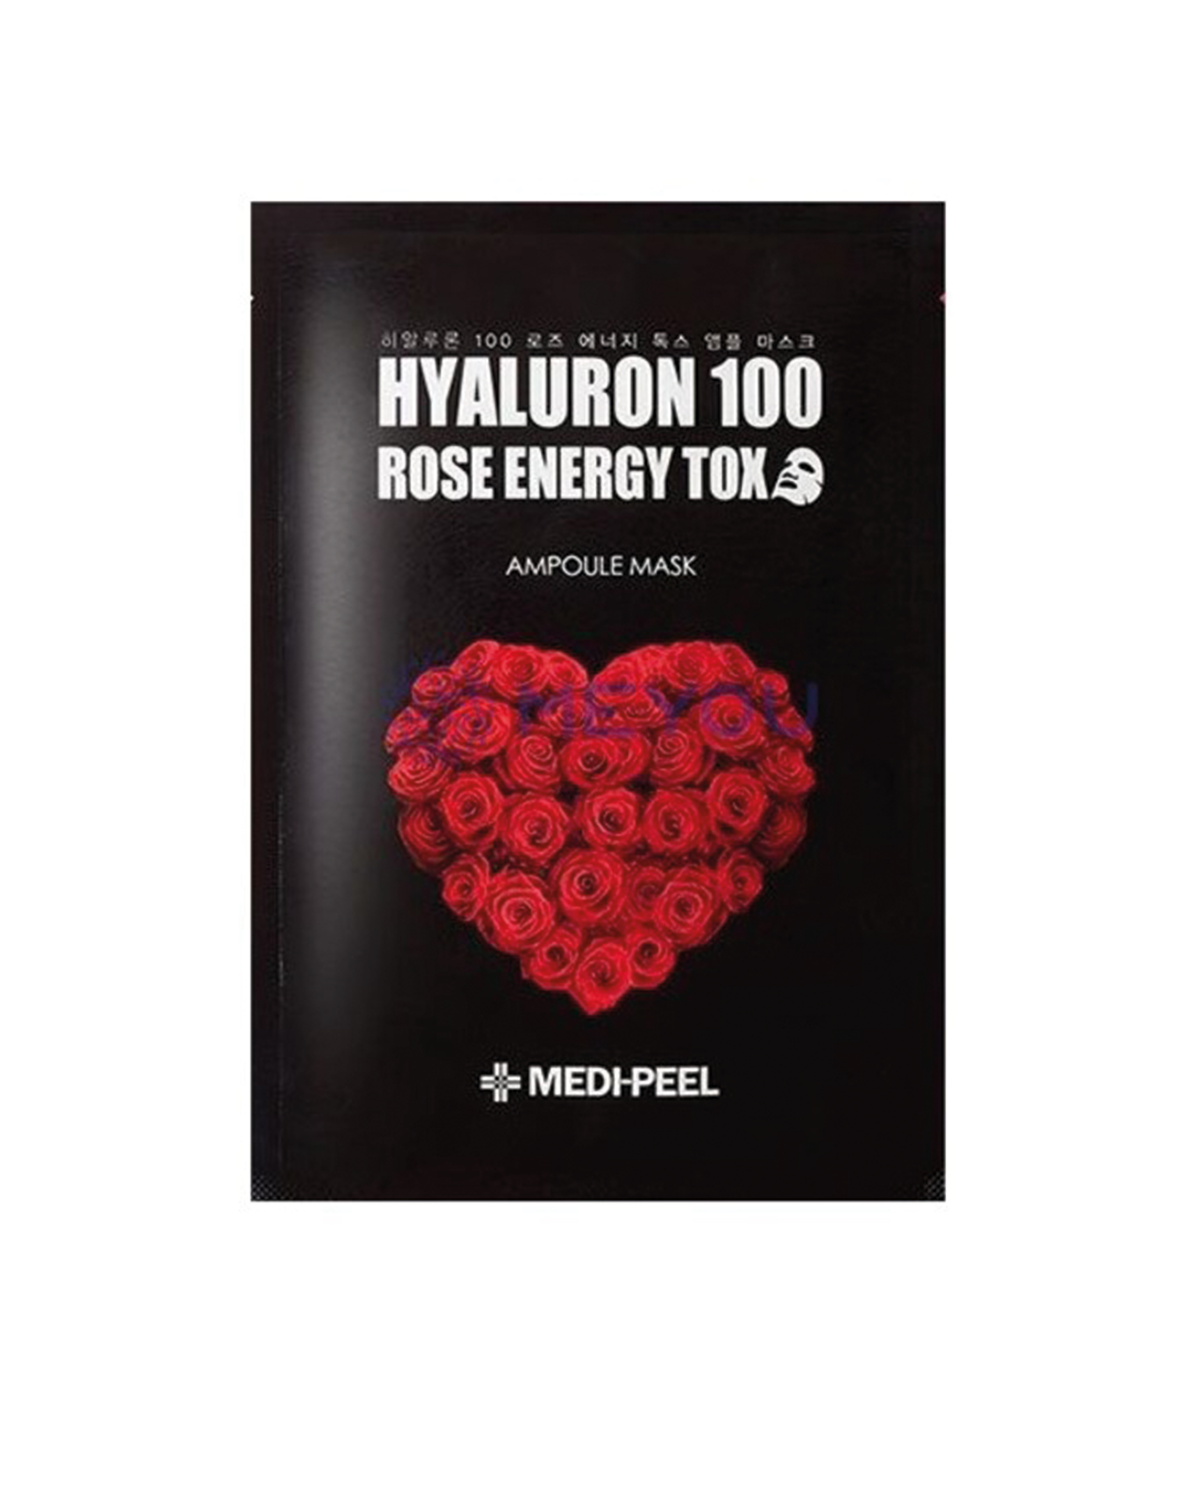 MEDI-PEEL Hyaluron 100 Rose Energy Tox 30 ml